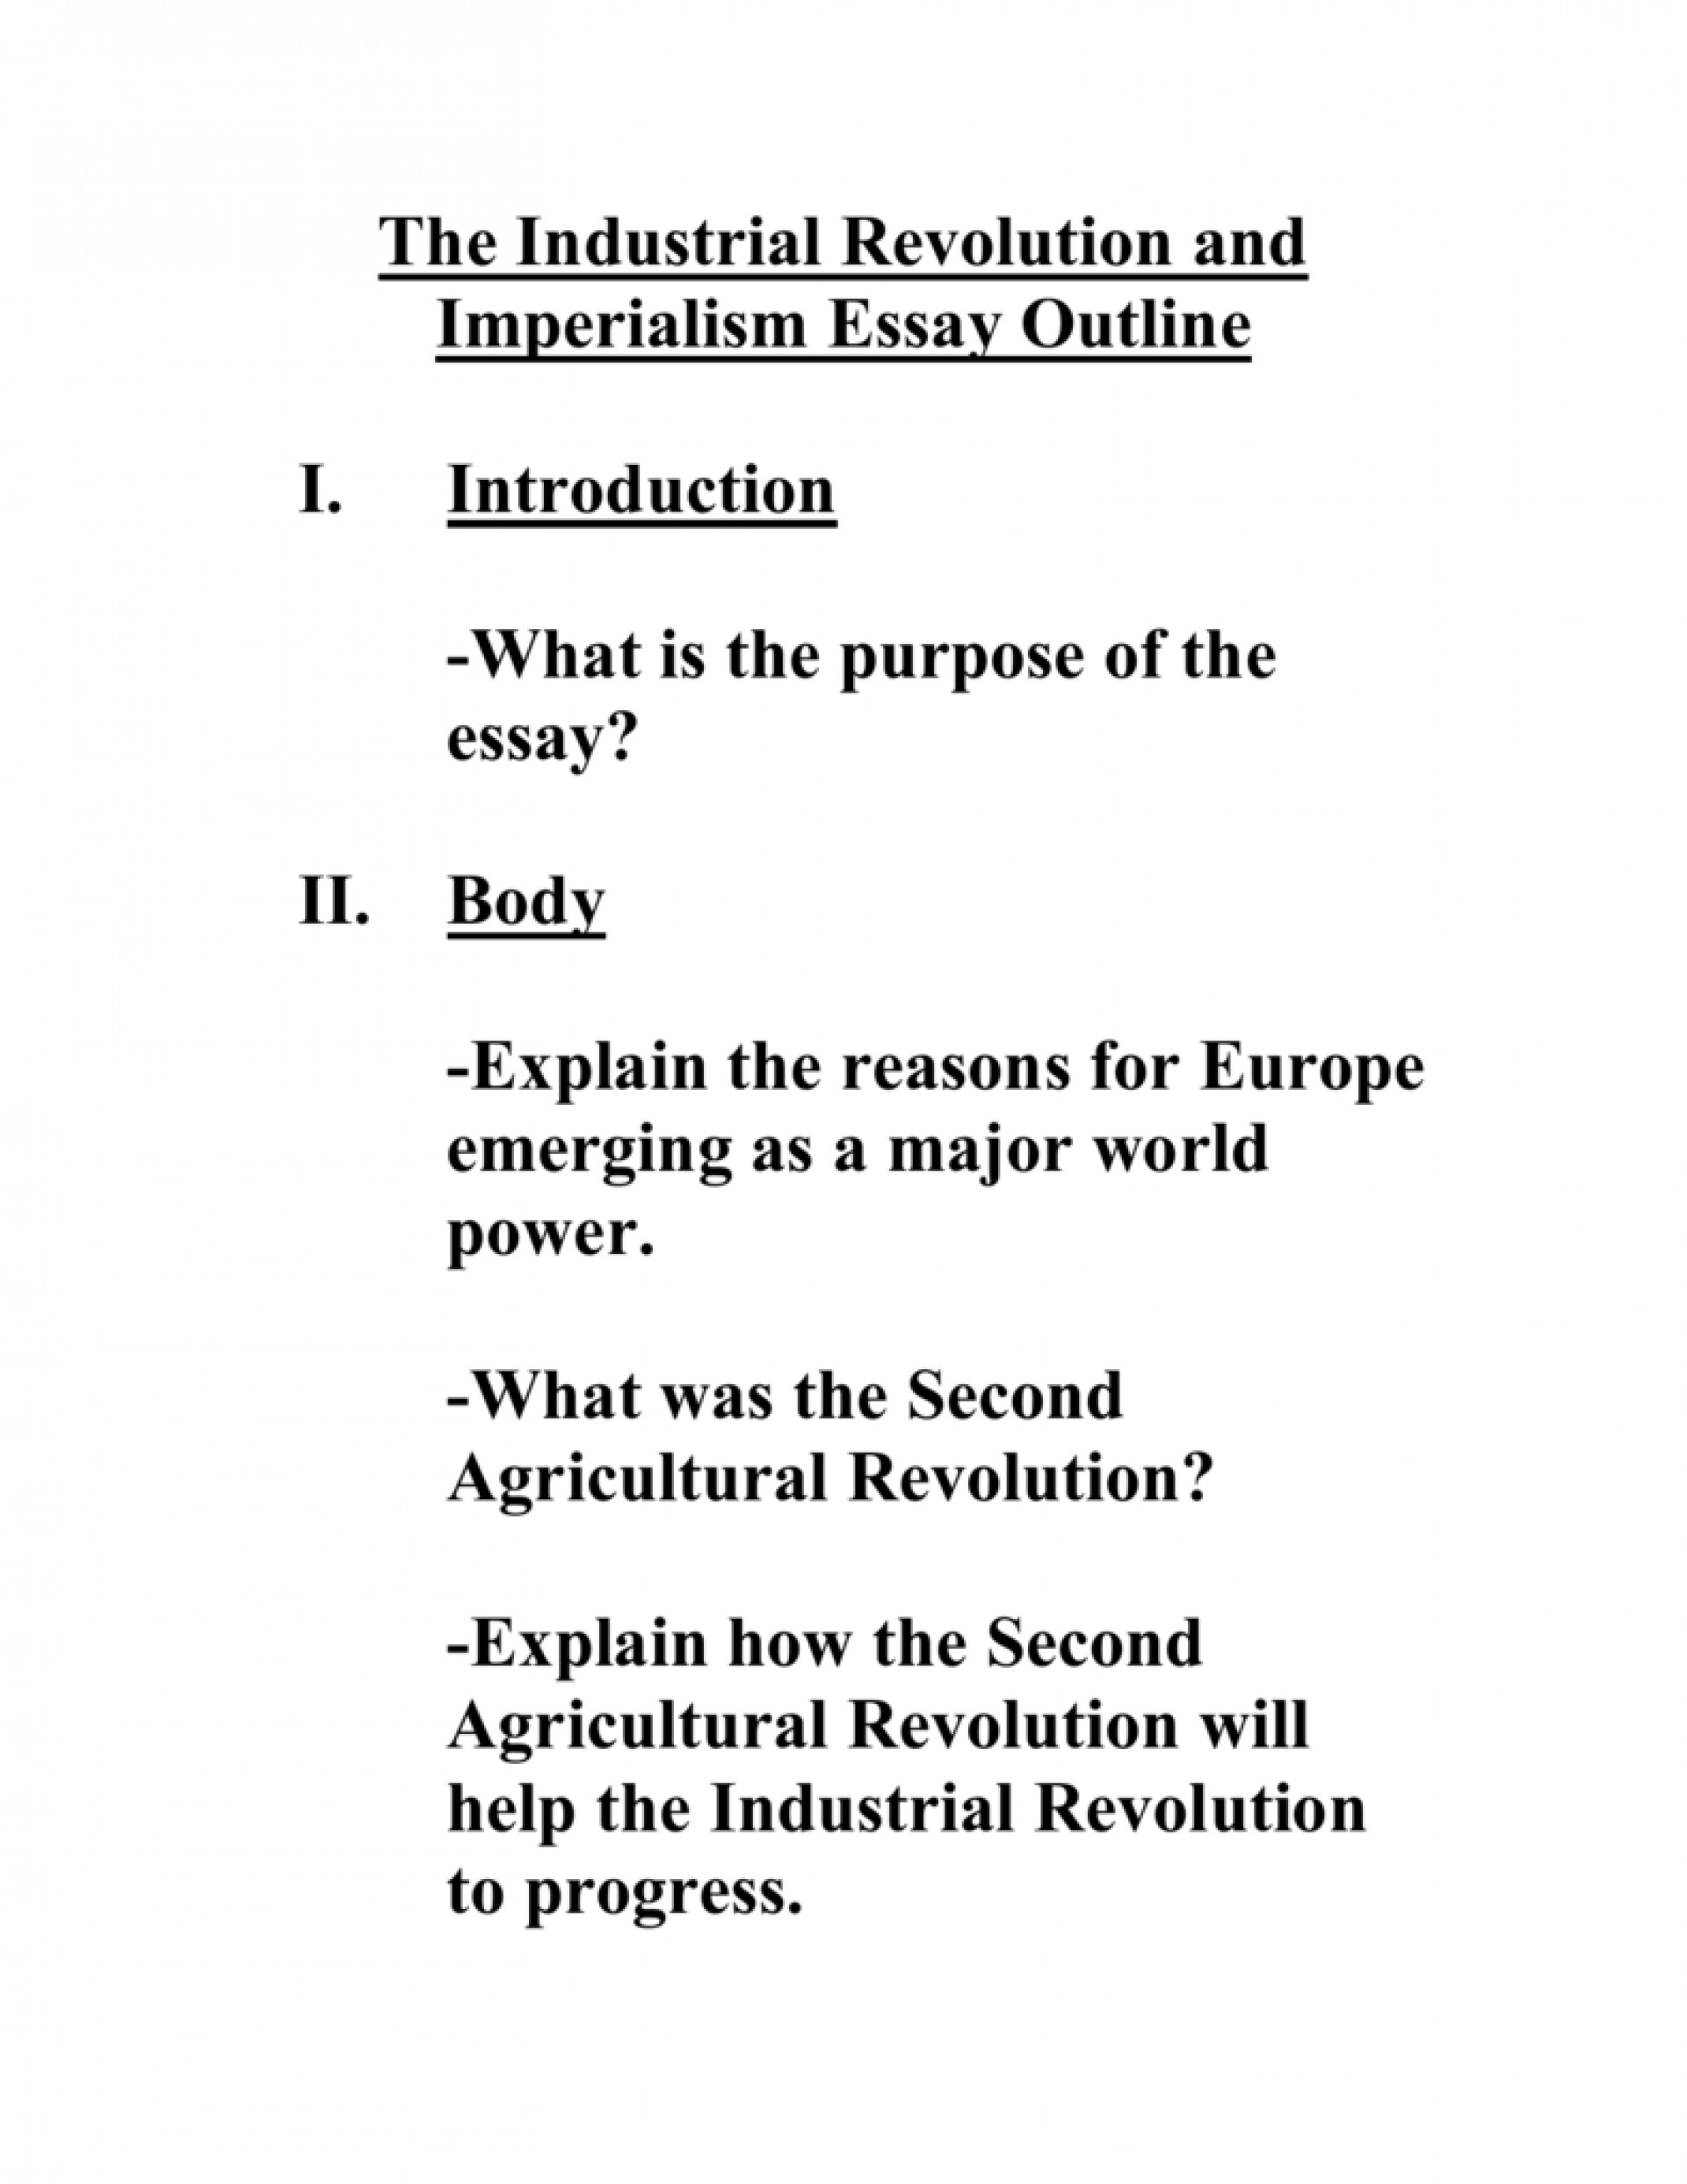 006 Imperialism Essay 008020297 1 Awful Hook Topics Thesis Statement 1920